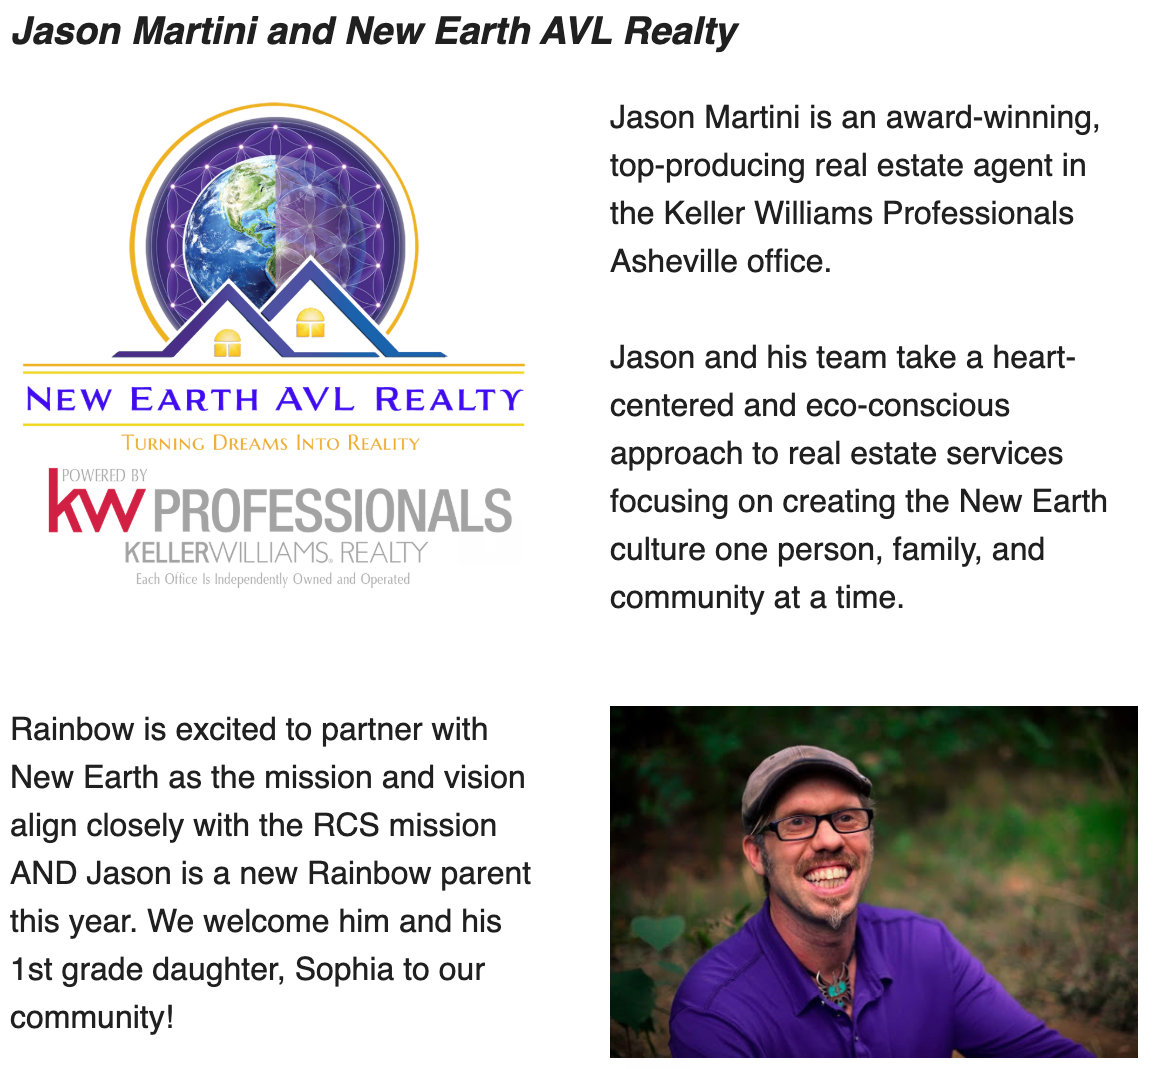 New Earth AVL Realty and Jason Martini is Acknowledged By Rainbow Community School As A Sponsor